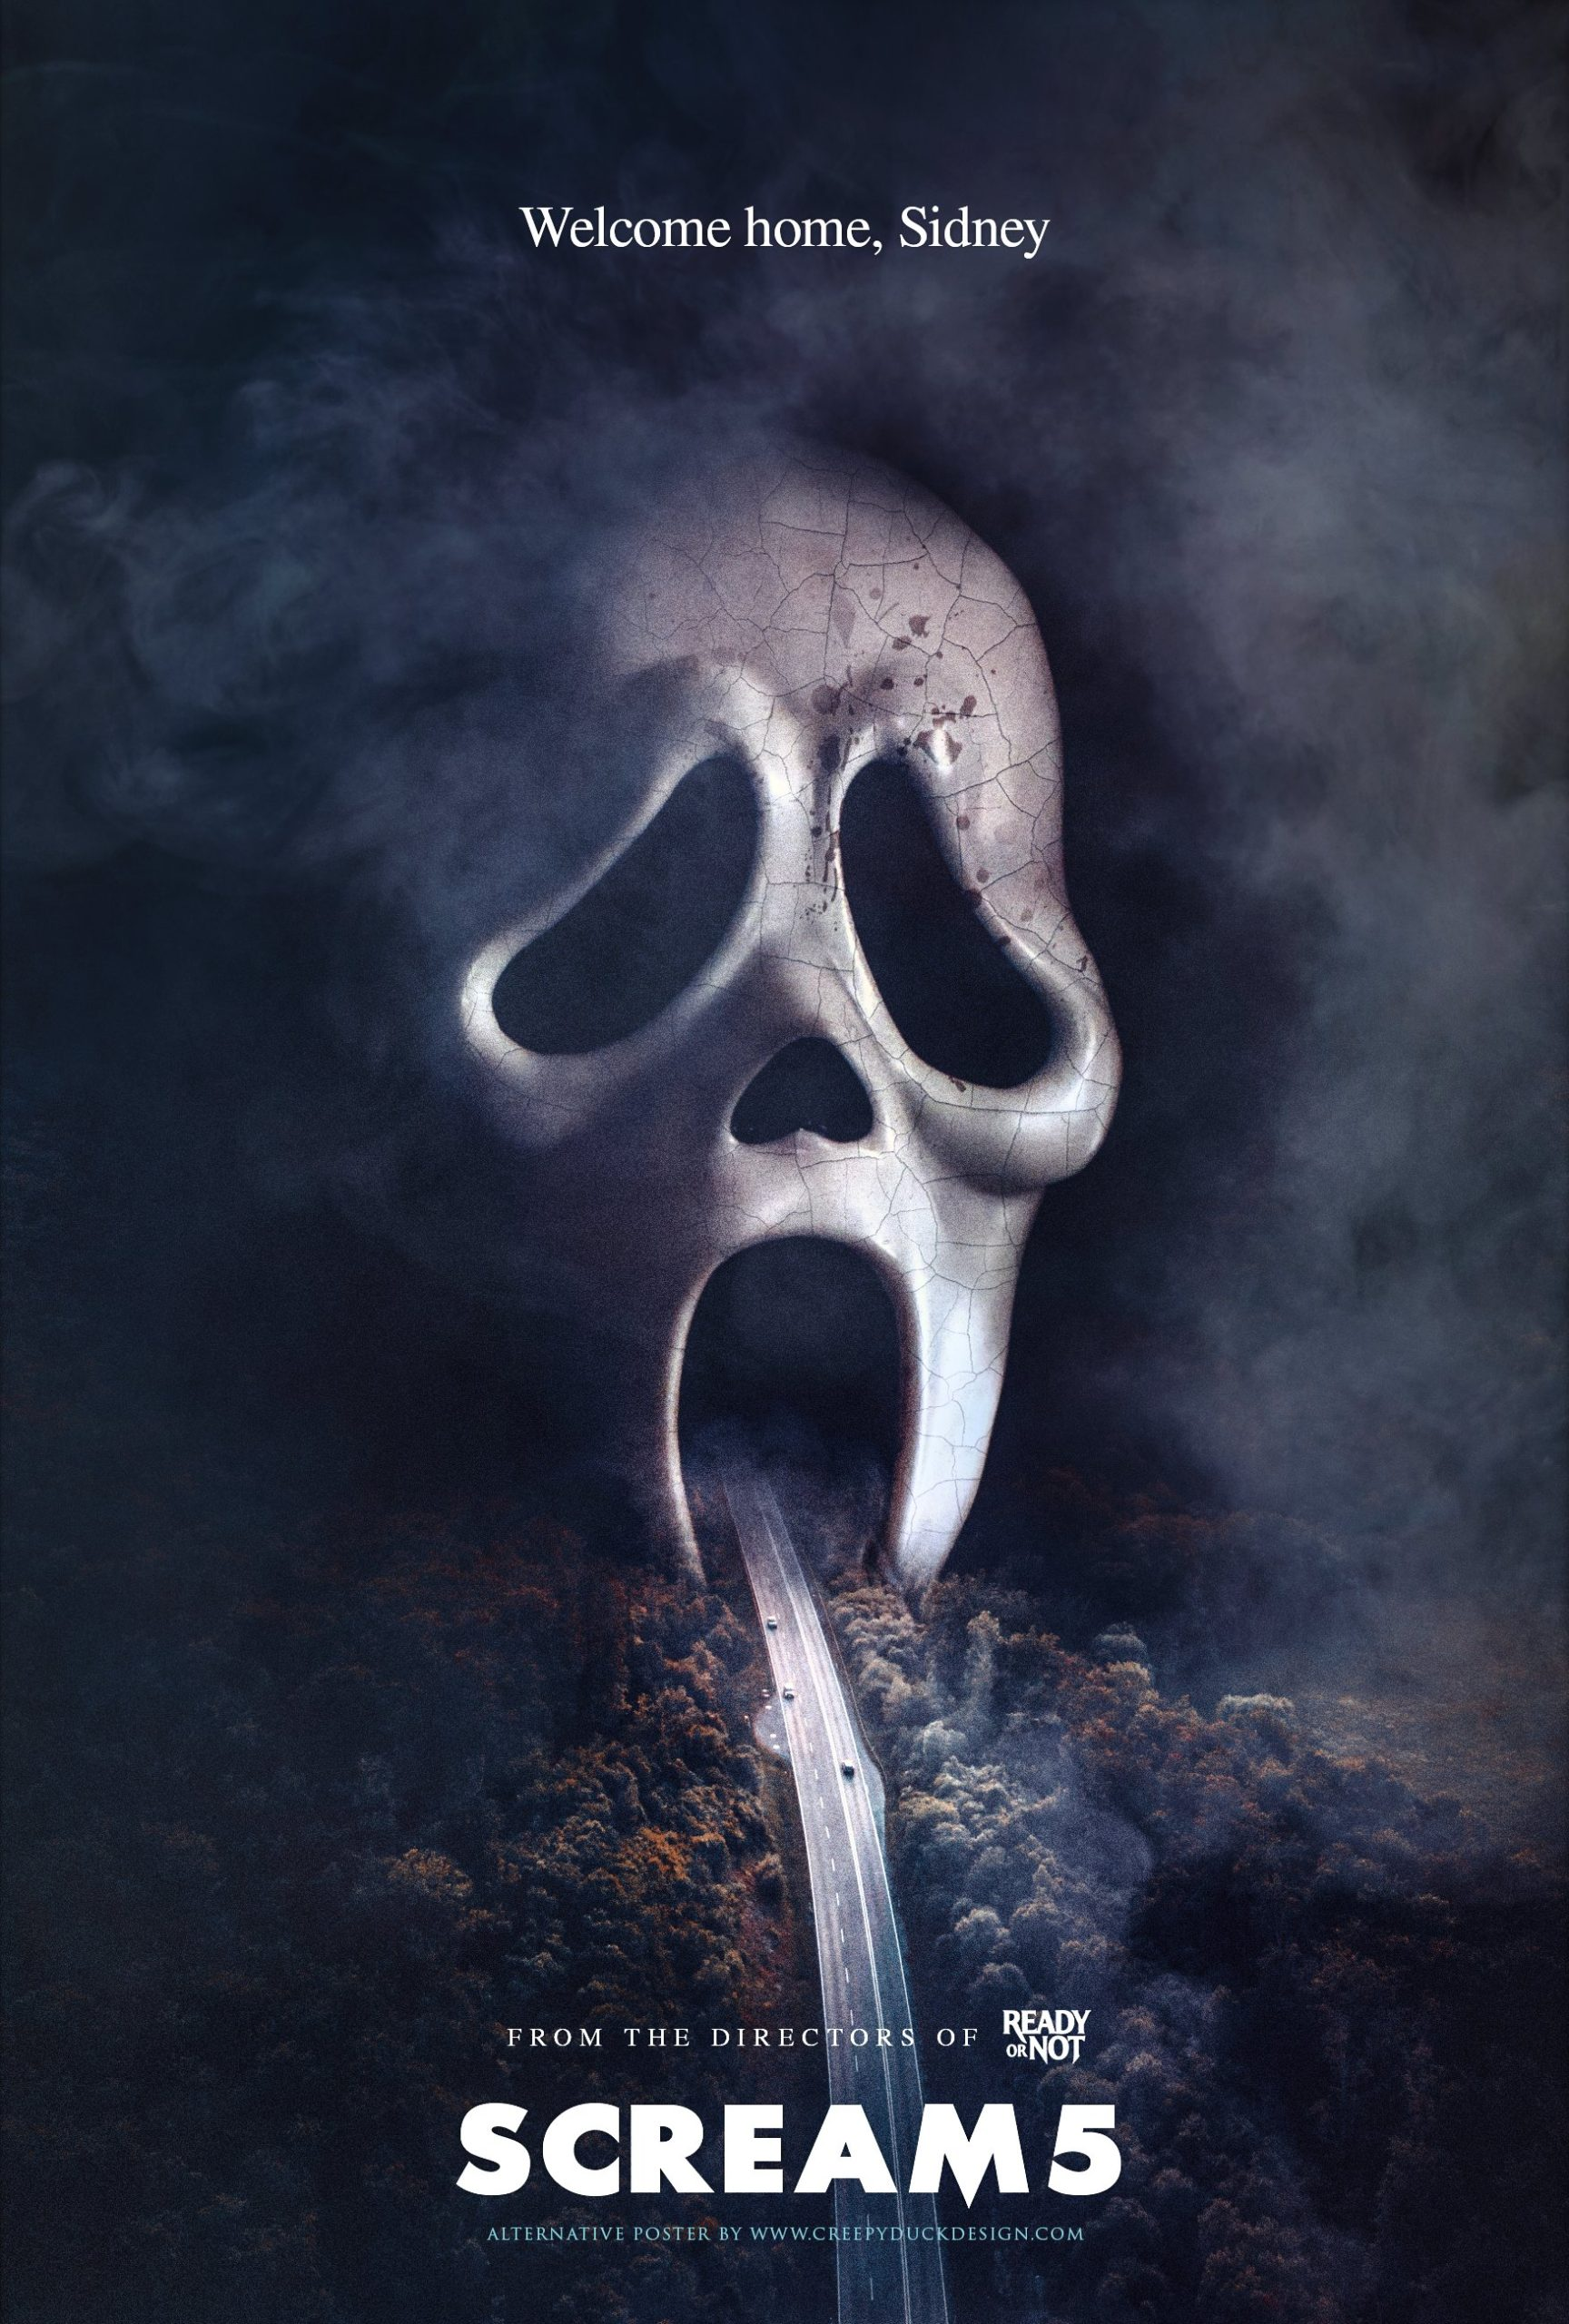 Killer Fan-Made 'Scream 5' Poster Welcomes Sidney Back to Woodsboro - Bloody Disgusting